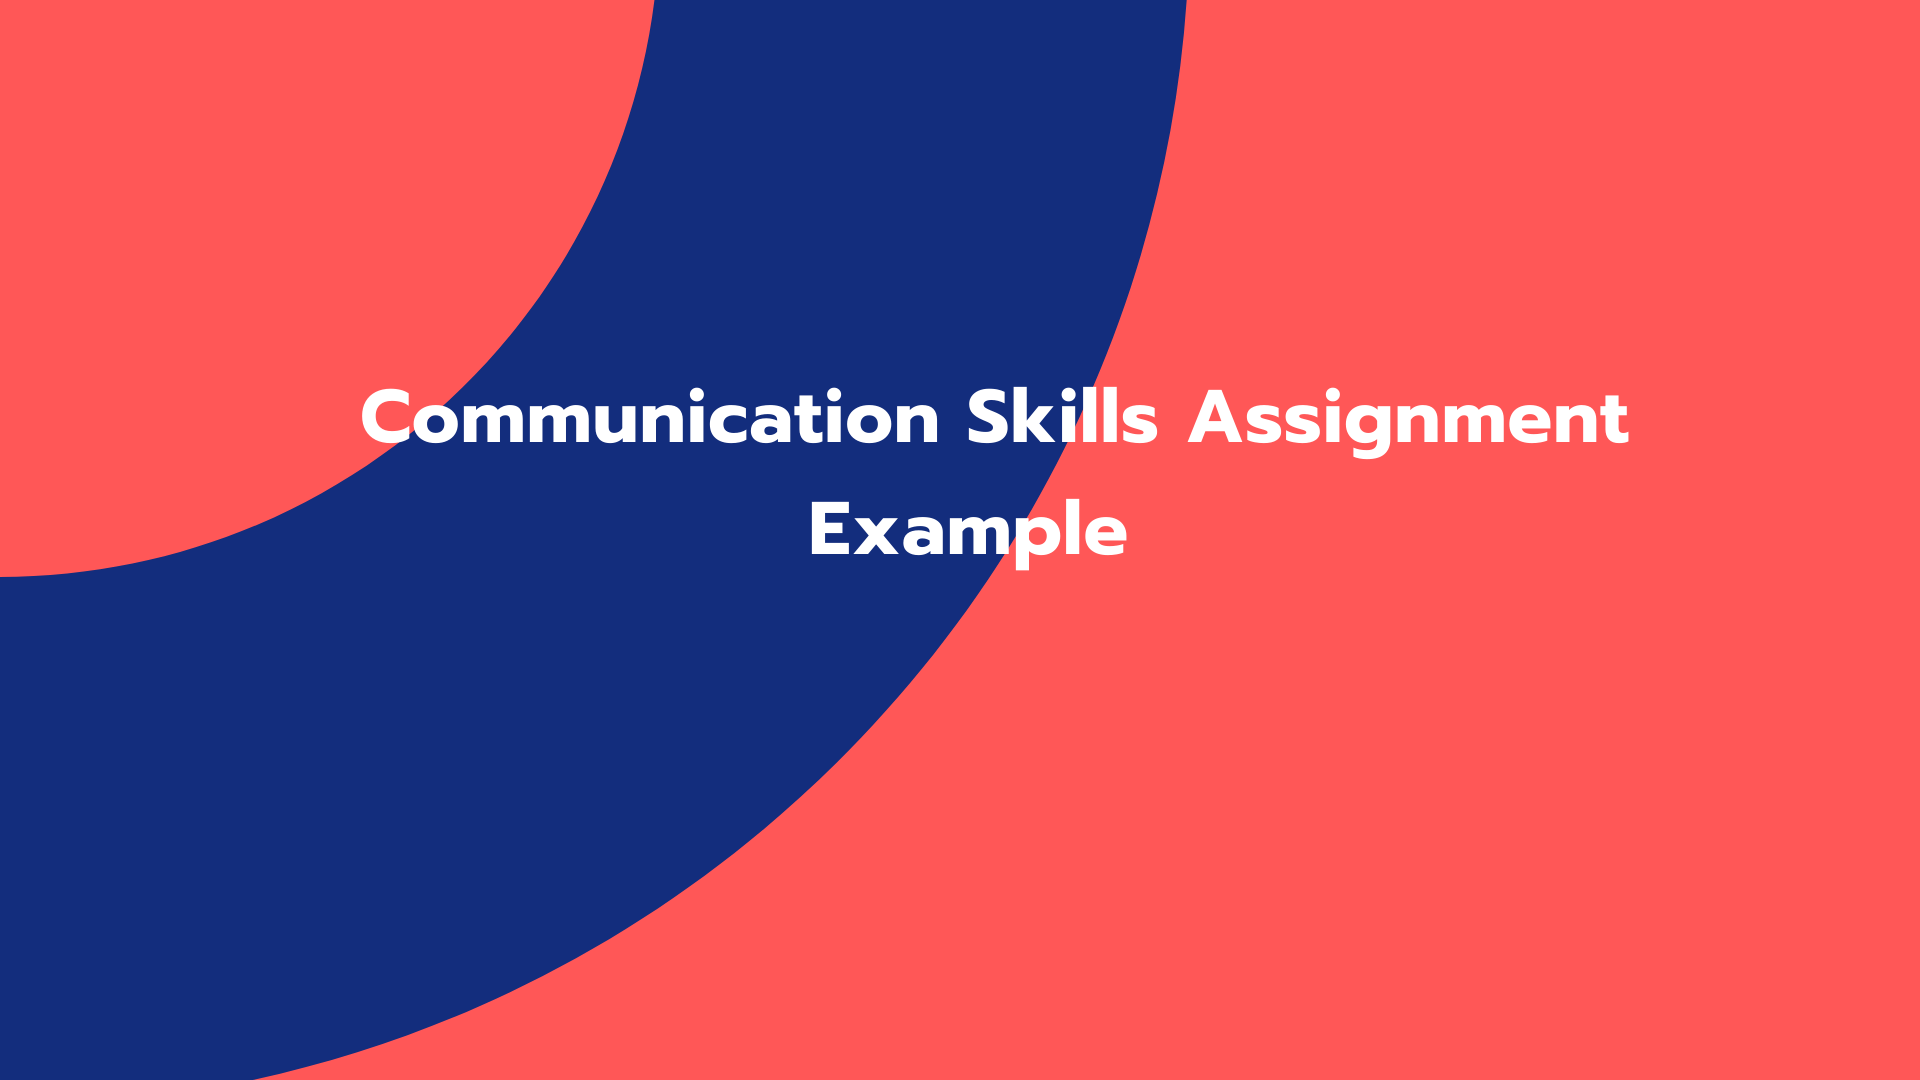 Communication Skills Assignment Example